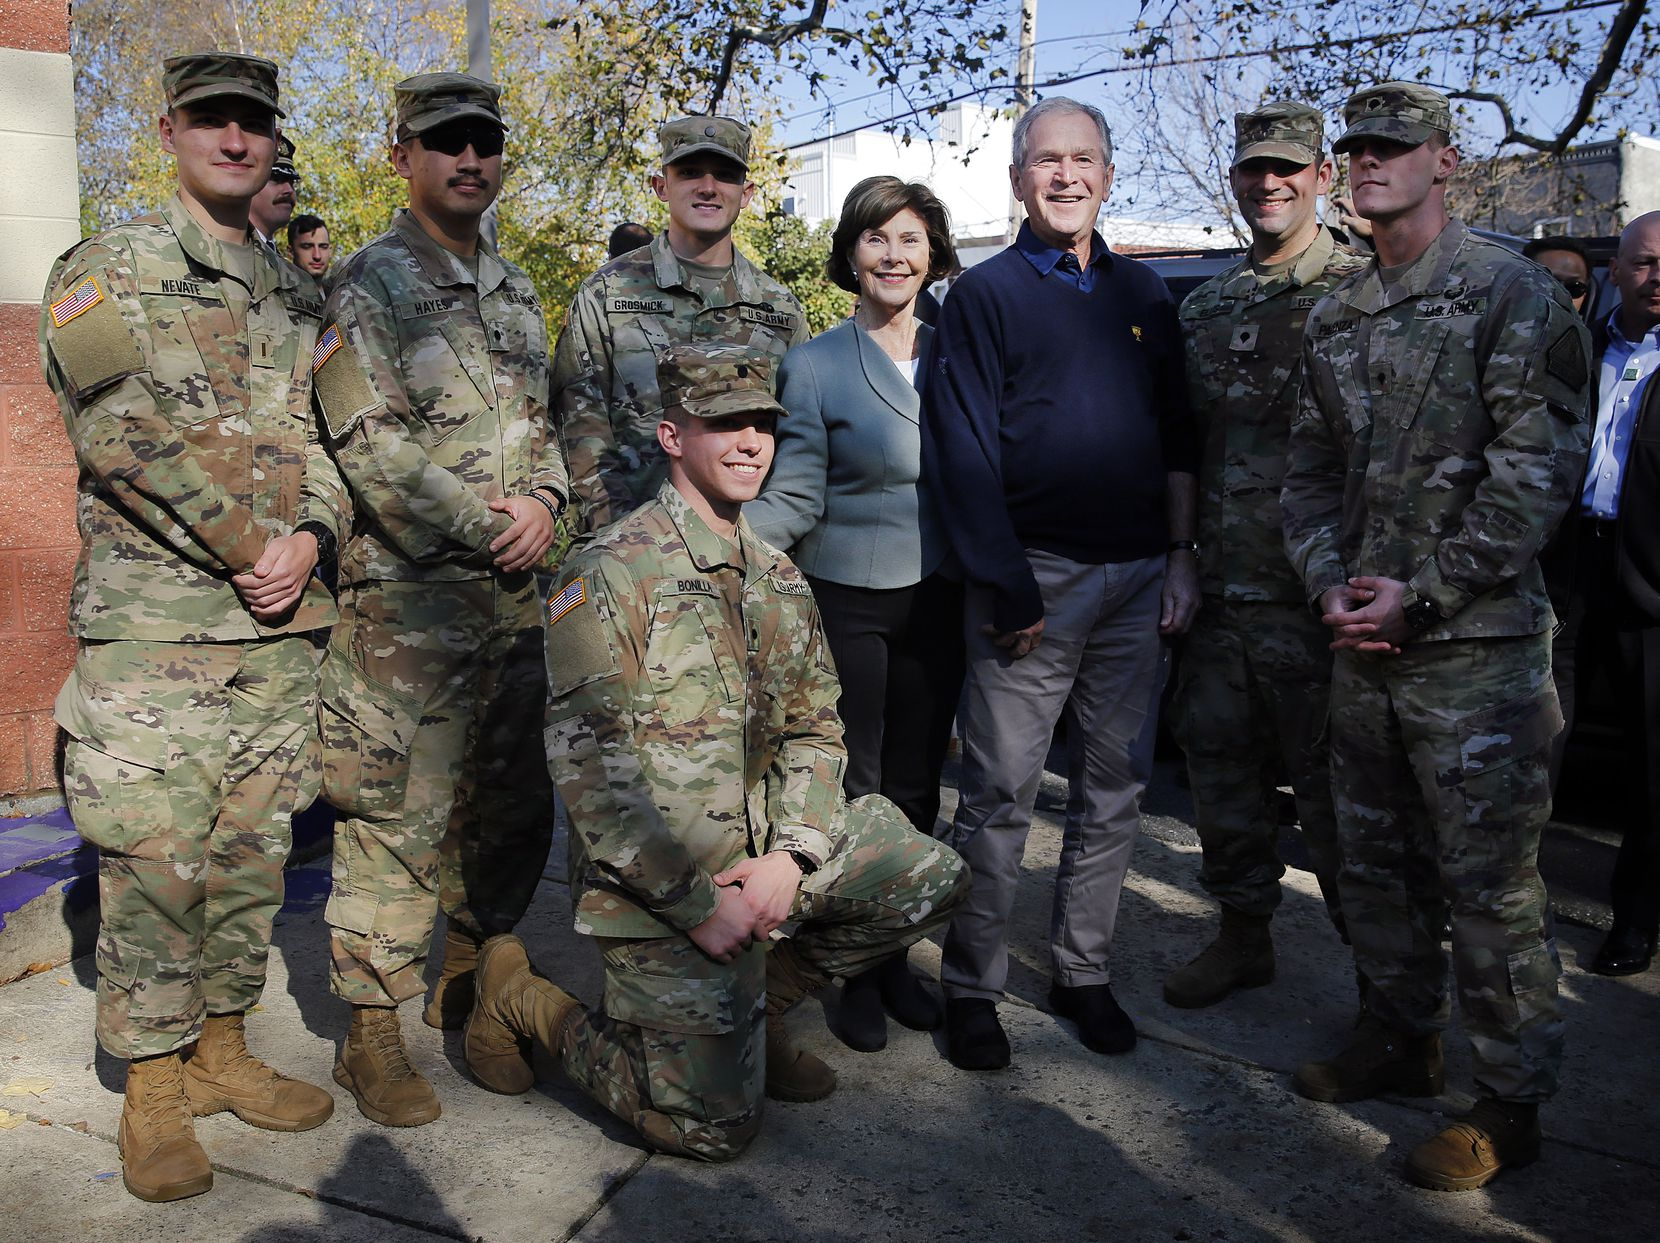 Former President George W. Bush and former first lady Laura Bush joined serviceman for a group photo before leaving Wharton Square in the Point Breeze neighborhood of Philadelphia on Sunday. Veterans who serve as Character Does Matter mentors for the Travis Manion Foundation planted a pair of dogwood trees and worked on landscaping projects in the neighborhood for Veterans Day.